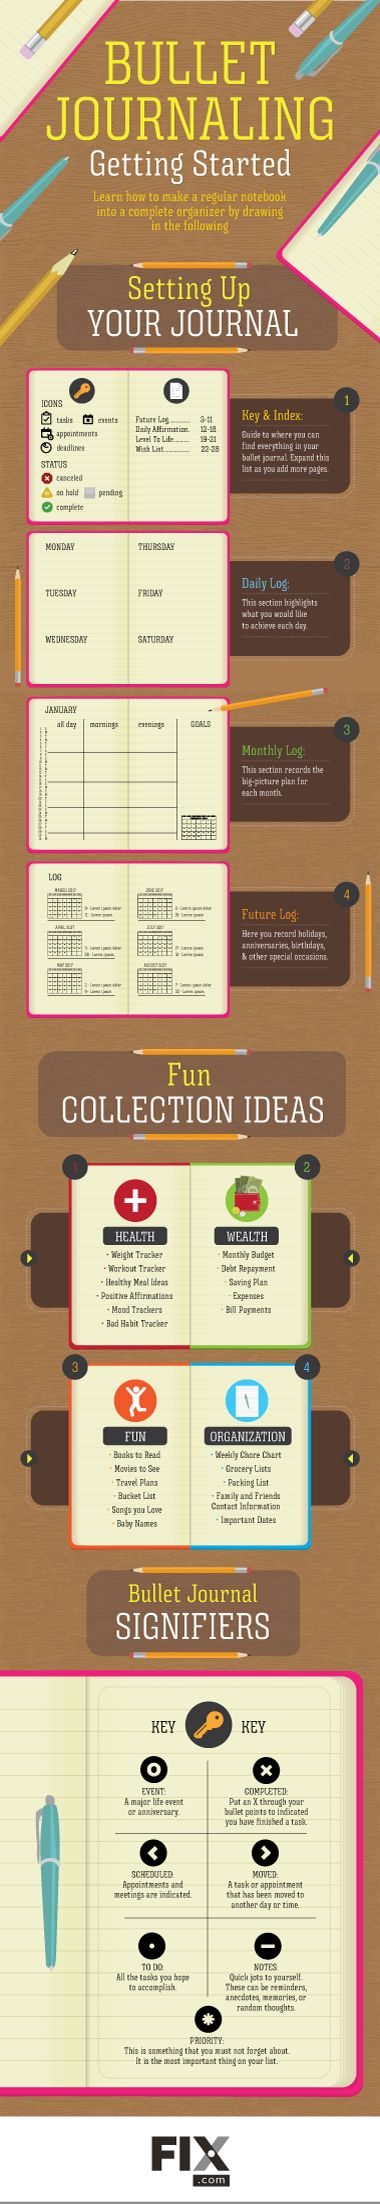 Bullet Journaling: a simple, clean infographic to summarize what a bullet journal is and how to get started! great introduction to this organizational tool